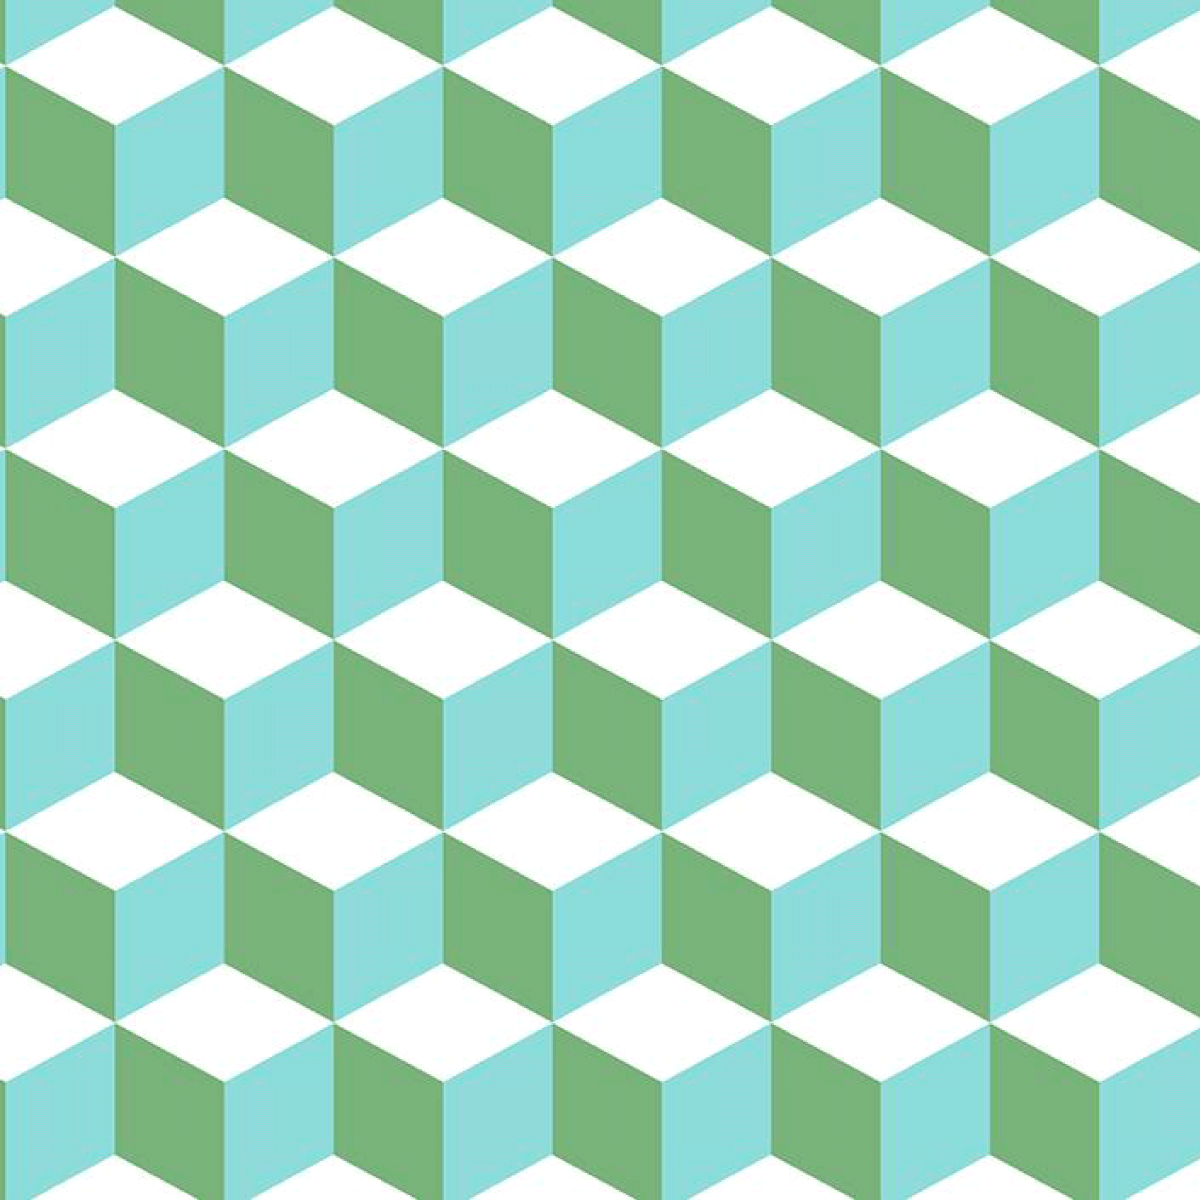 Qbert Classic Removable Wallpaper - Pastel